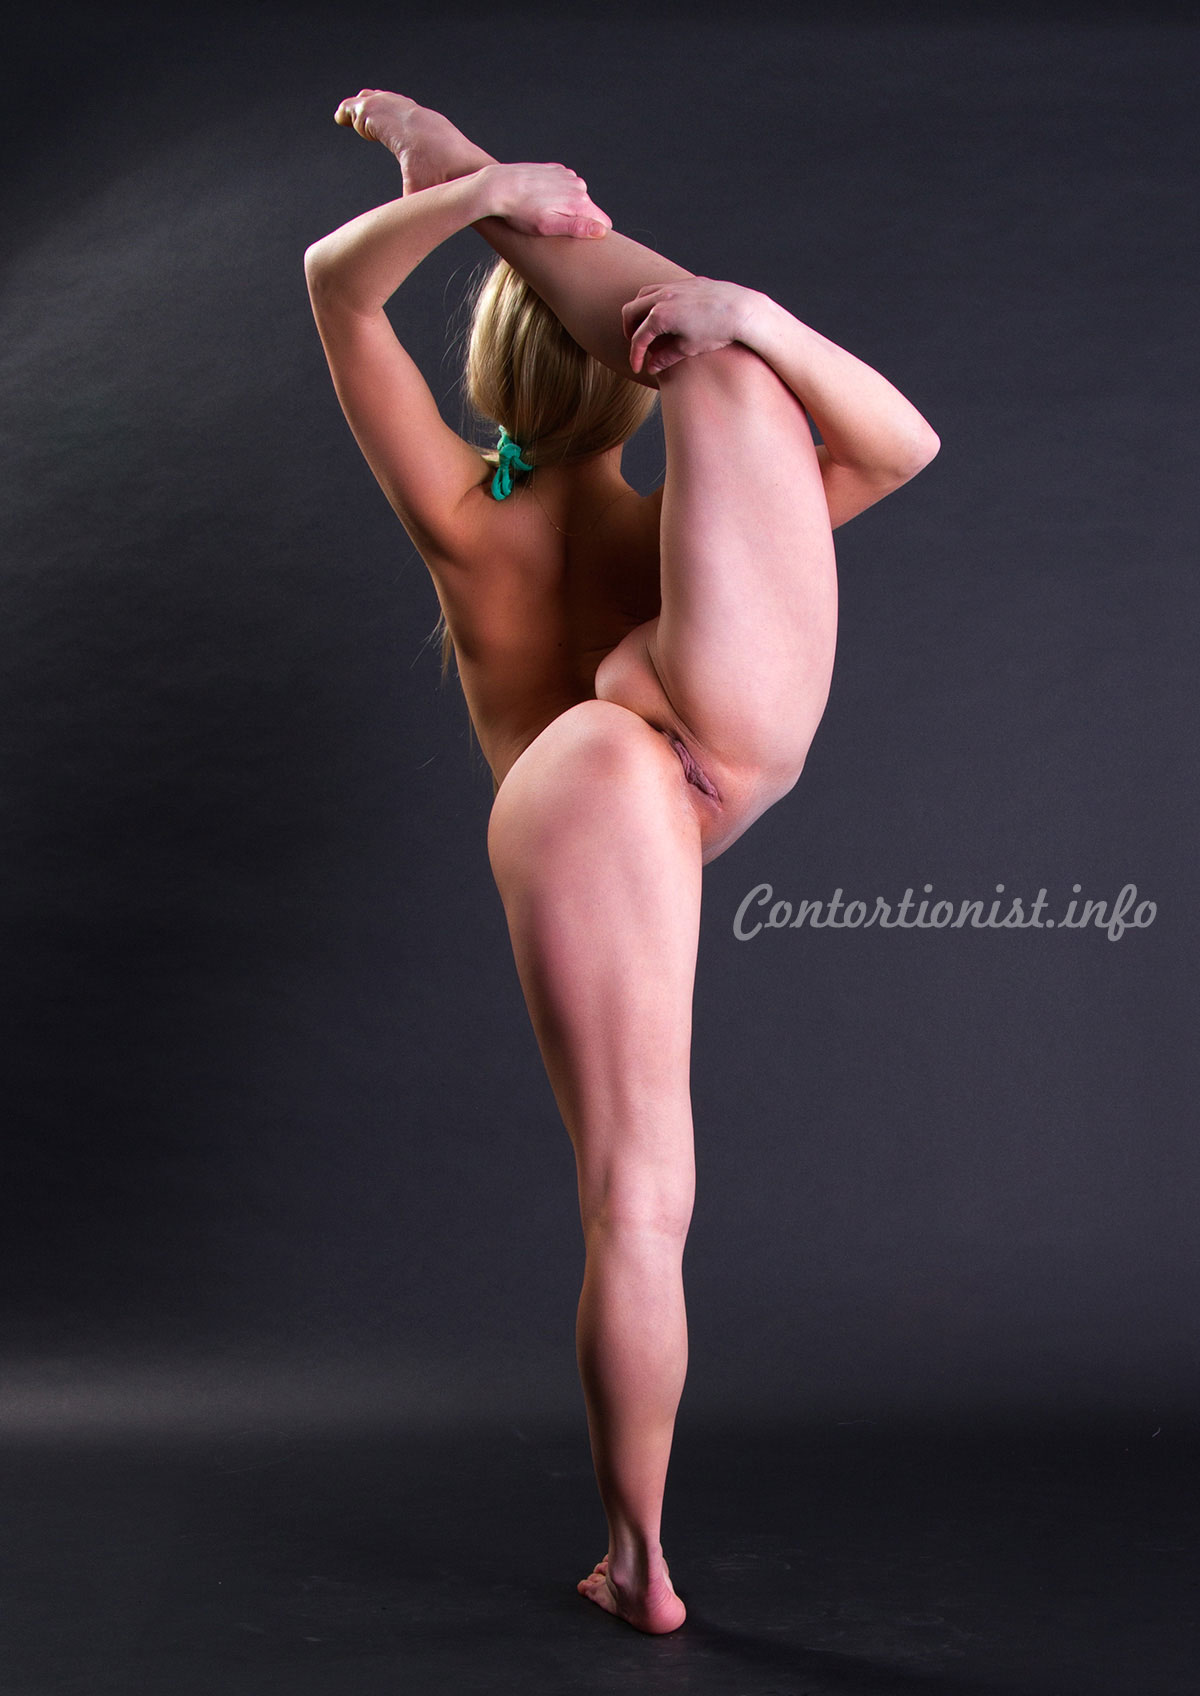 Girl contortionist flexible young